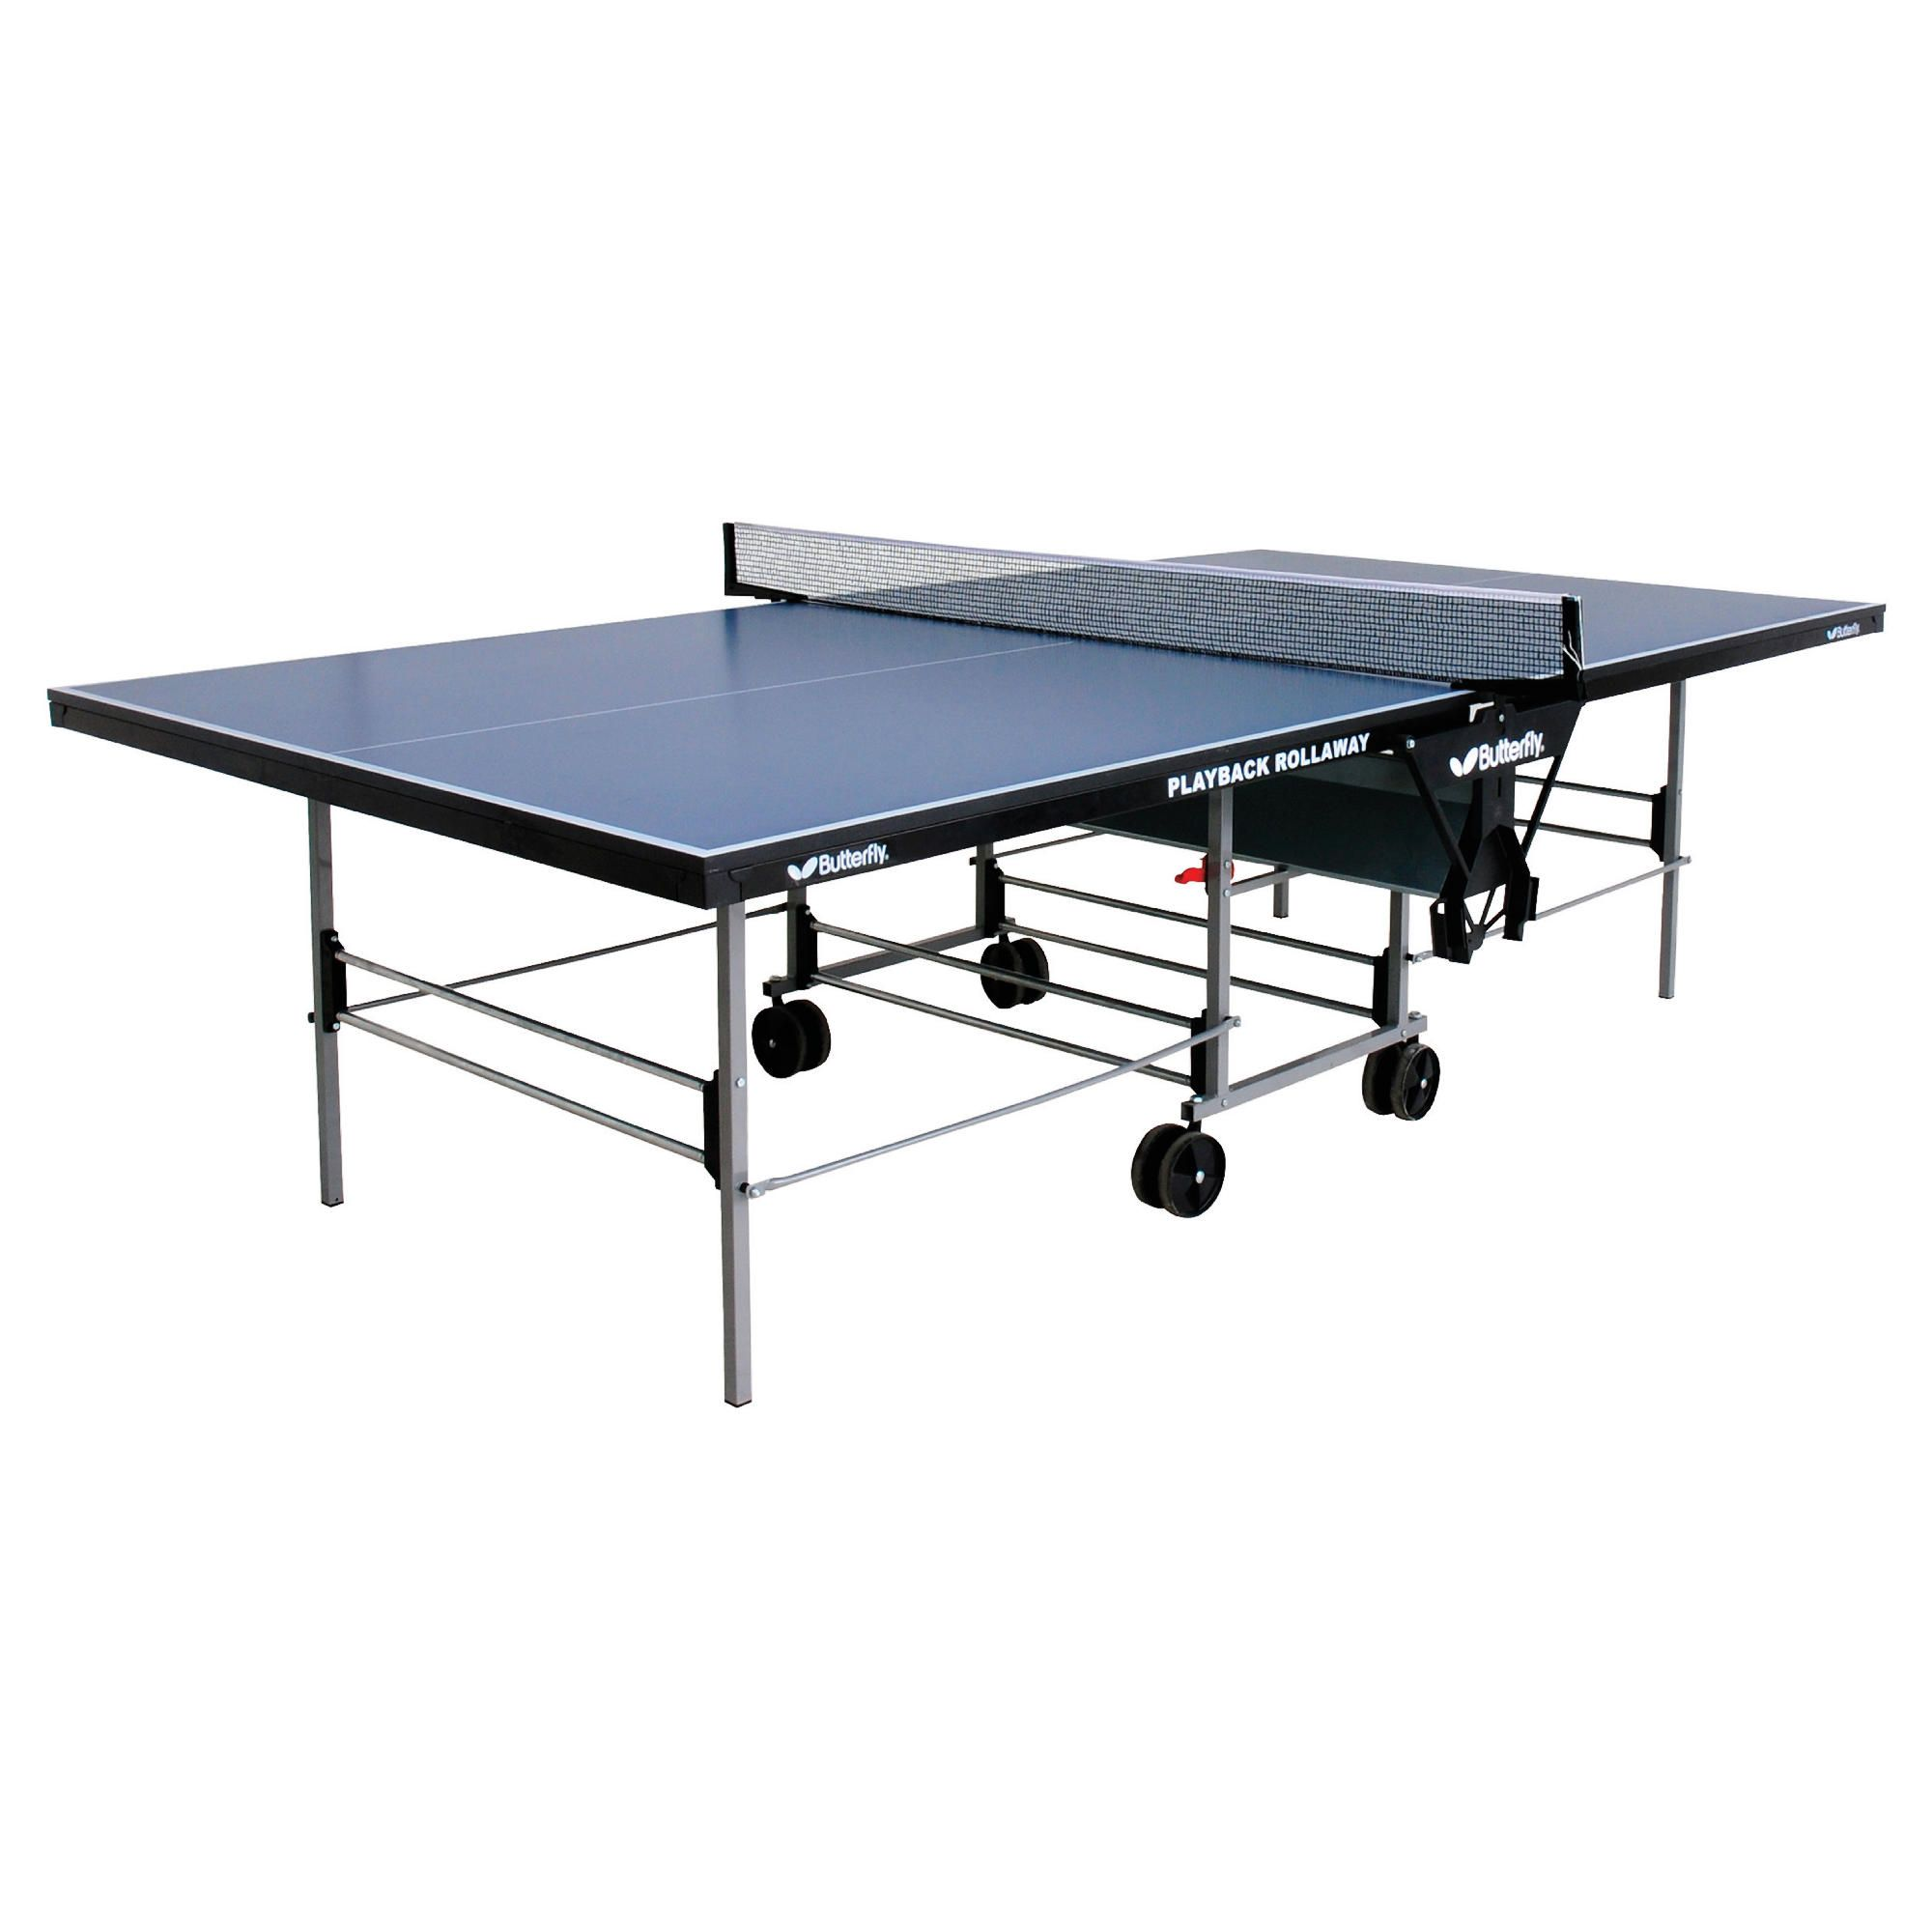 Butterfly Playback Rollaway Table Tennis Table - Blue at Tescos Direct